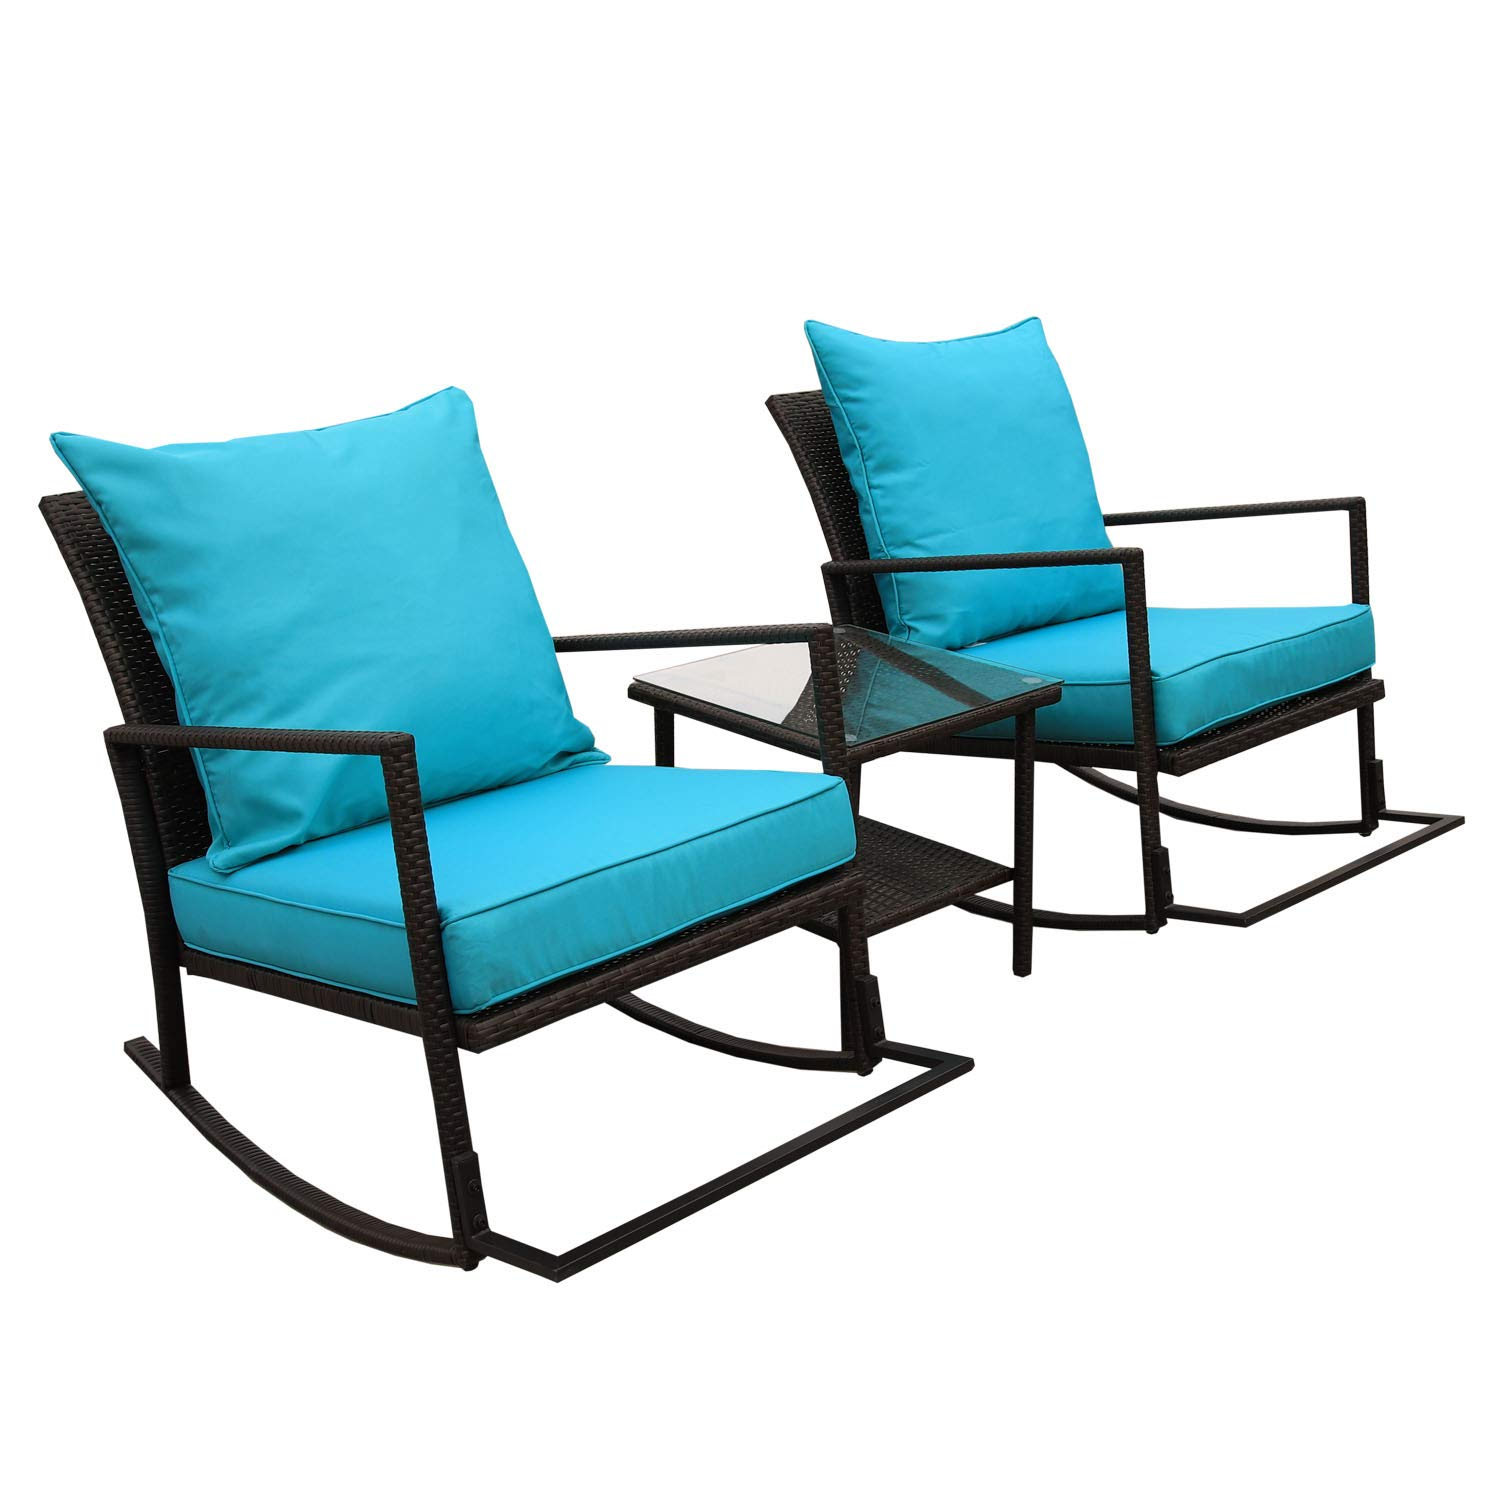 VALITA 3 PCS Outdoor Patio PE Rattan Furniture Rocking Conversation Set End Table with Glass Top and 2 Cushioned Chairs, Turquoise